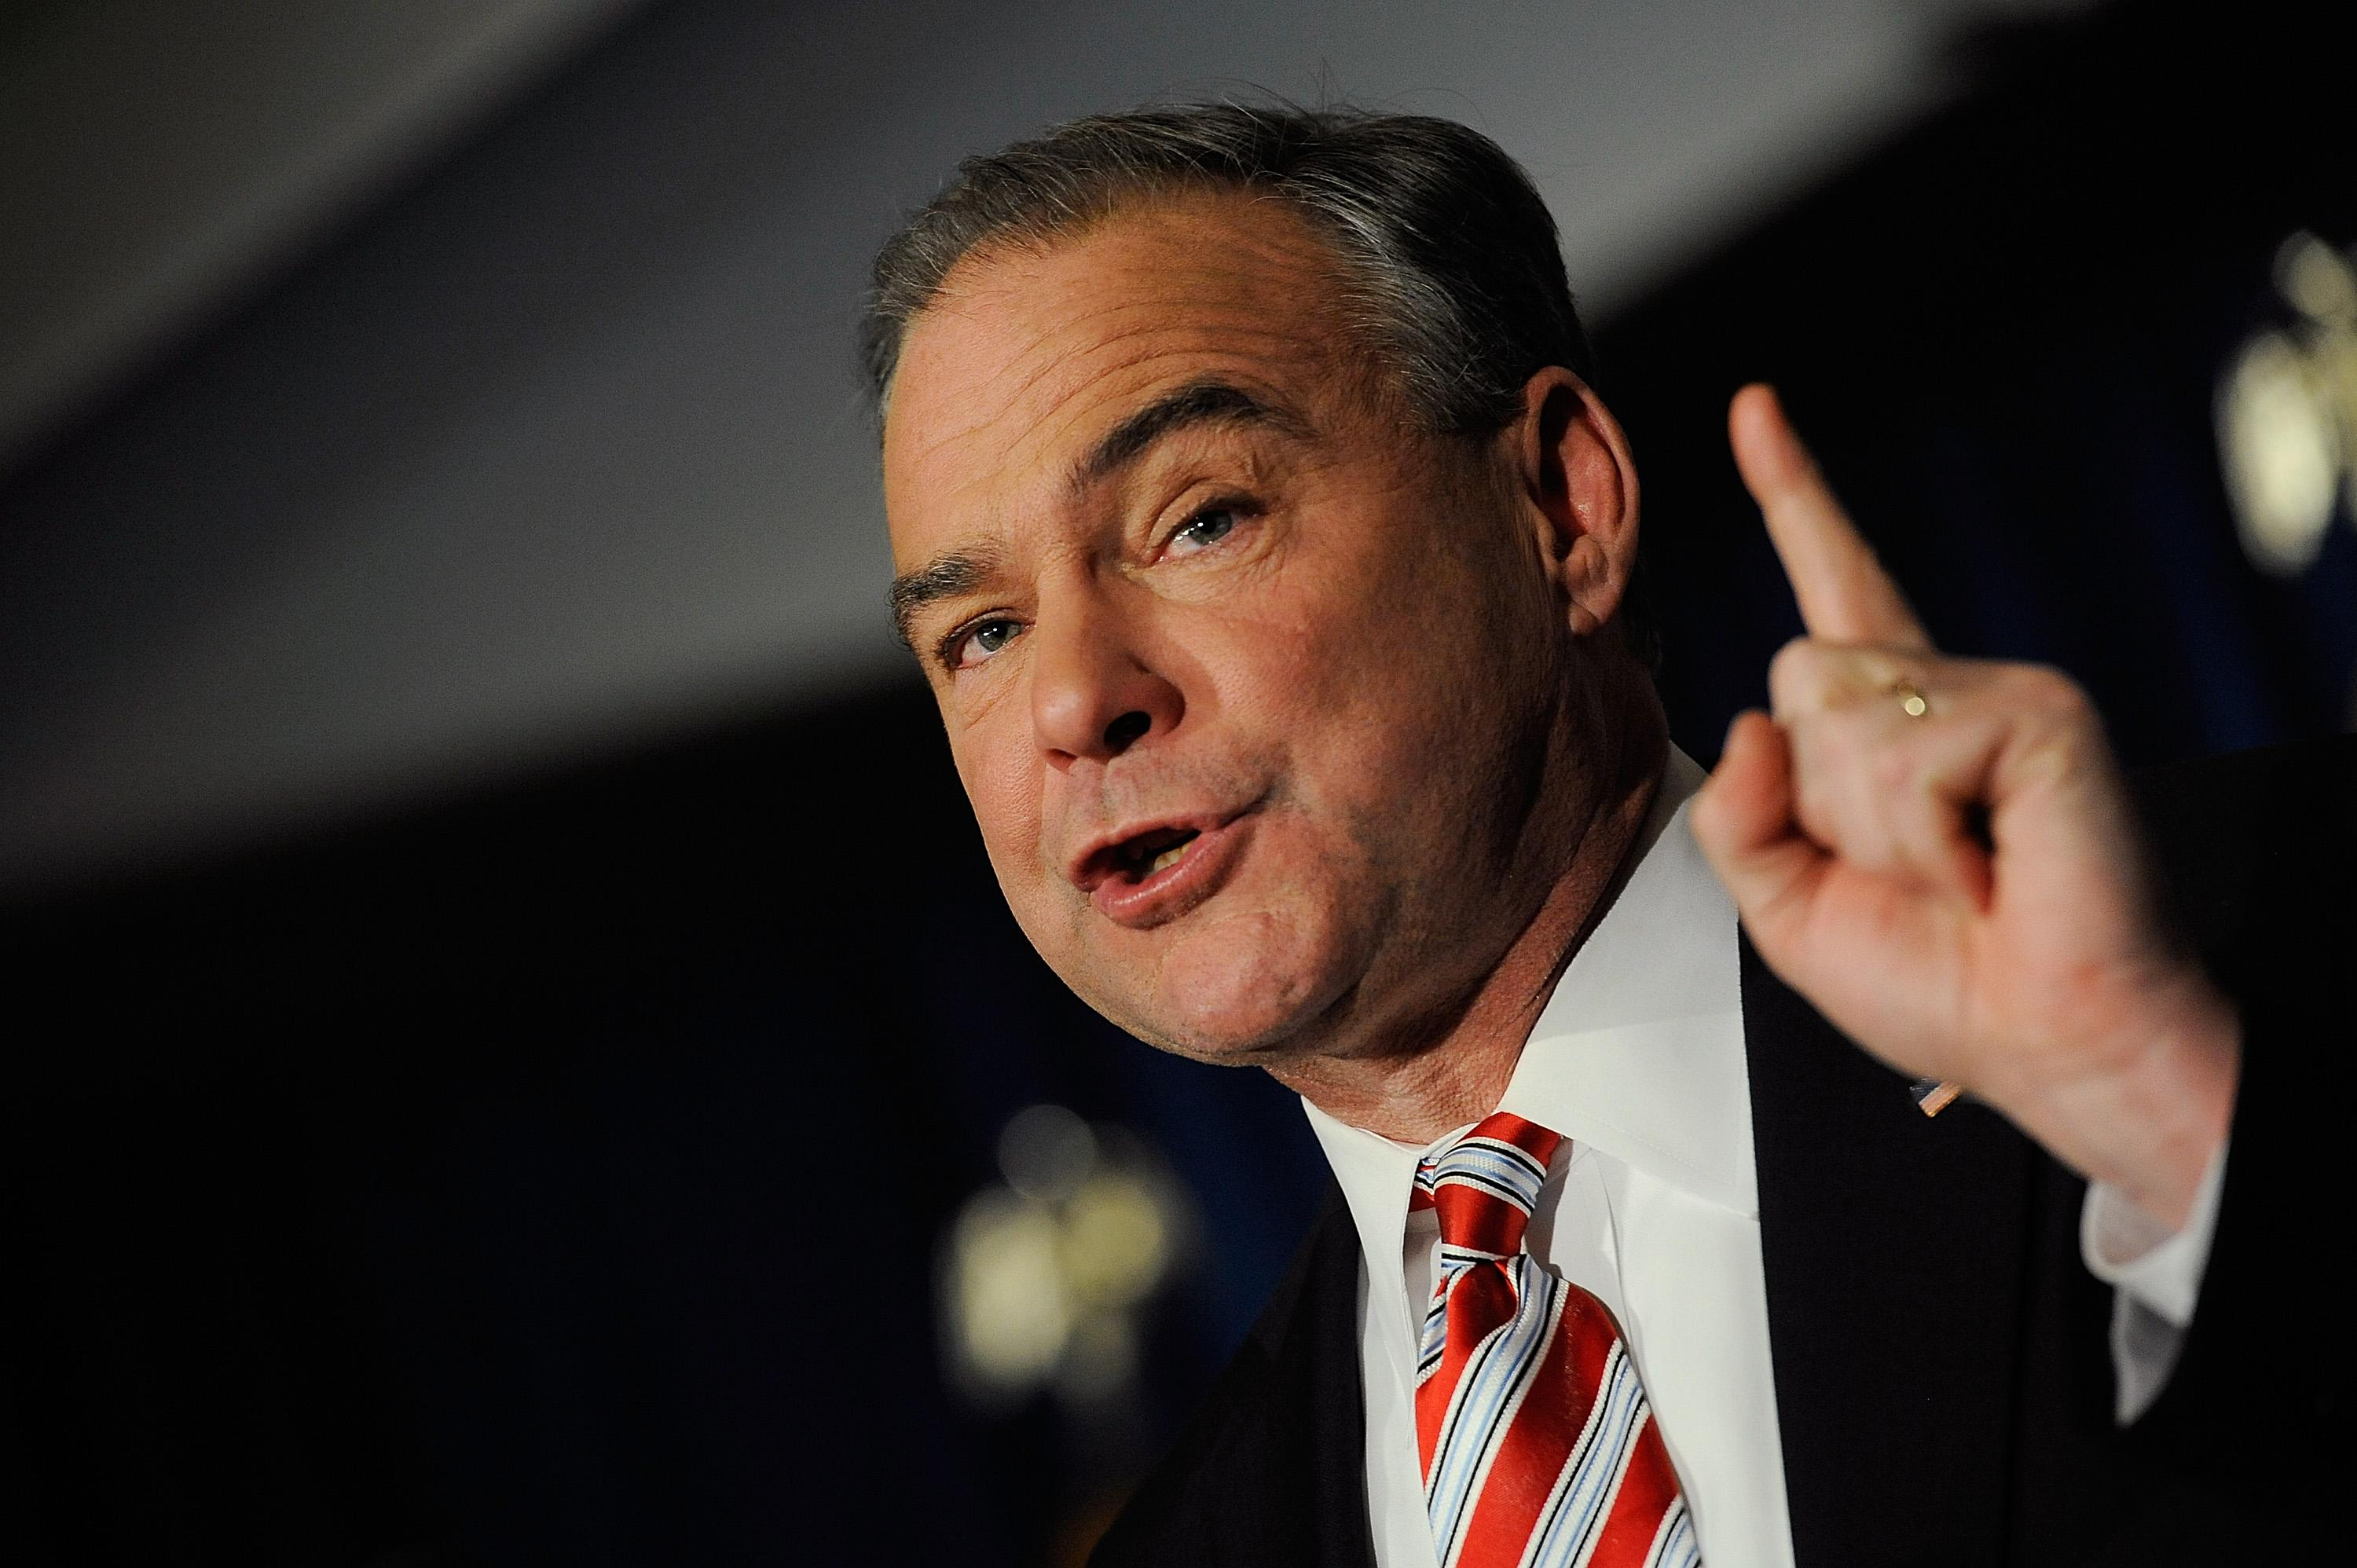 tim kaine offers solutions - HD3000×1996